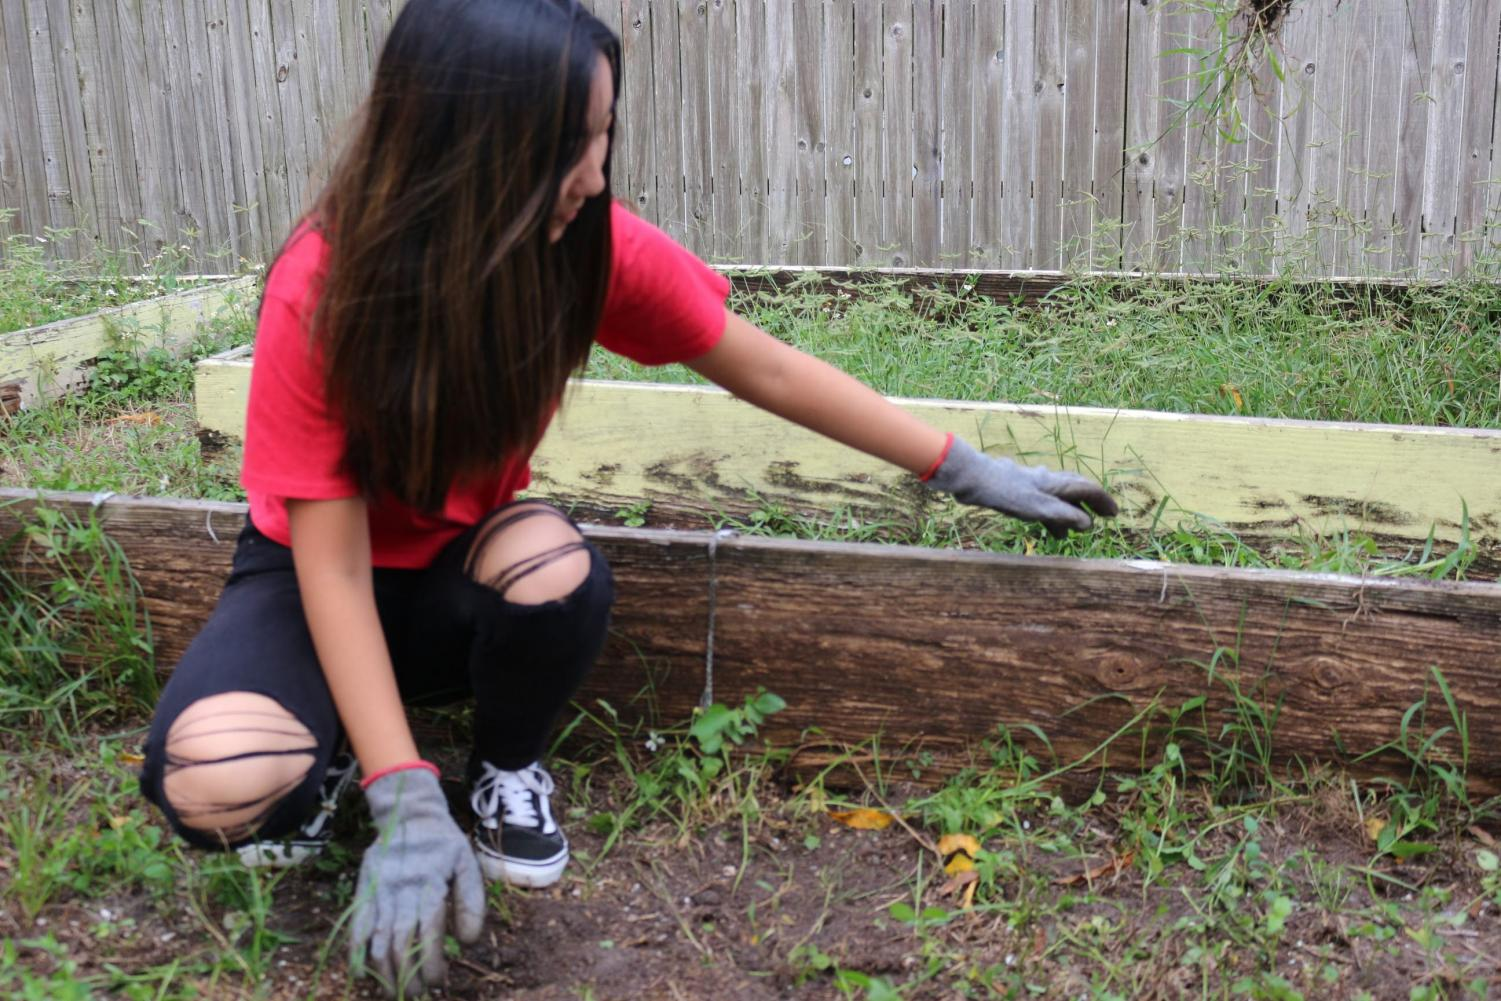 Madison+Brown+%28%2722%29+enjoys+helping+out+in+the+garden.+This+is+her+first+time+volunteering+at+a+Habitat+ReStore.